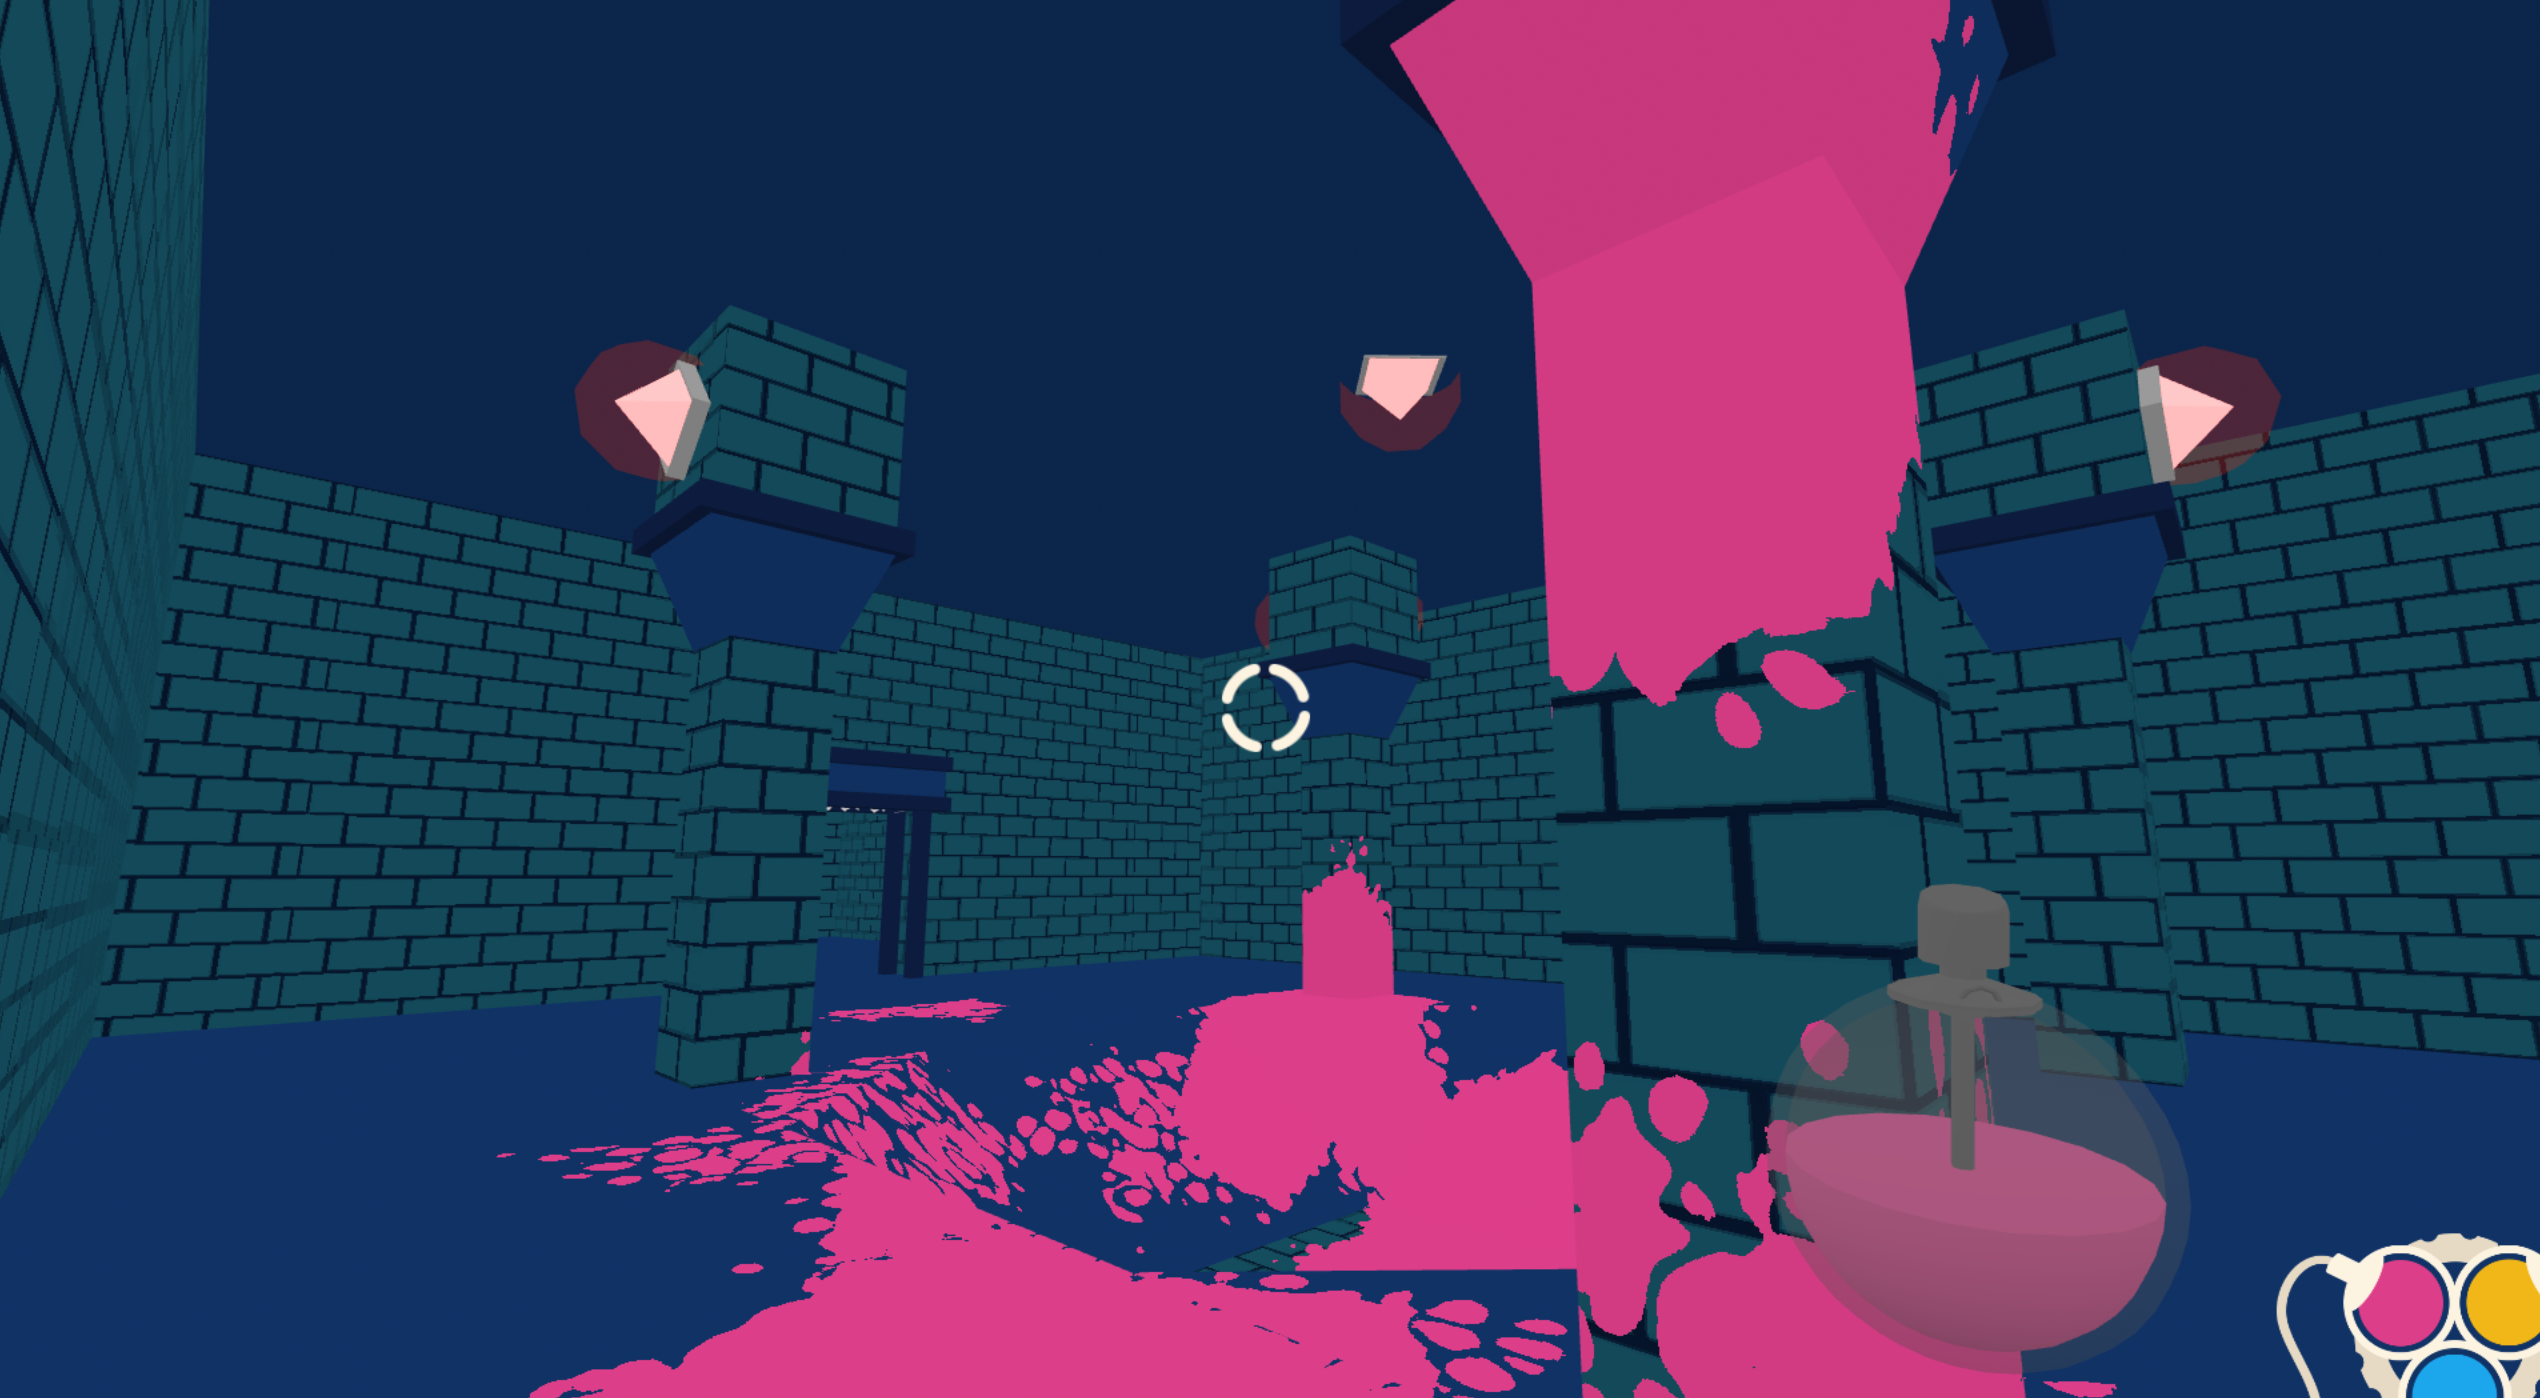 Screenshot from game Acrylica. A dark dungeon with three pillars rising from the floor to the ceiling. Pink splashes of paint cover the floor and closest pillar.